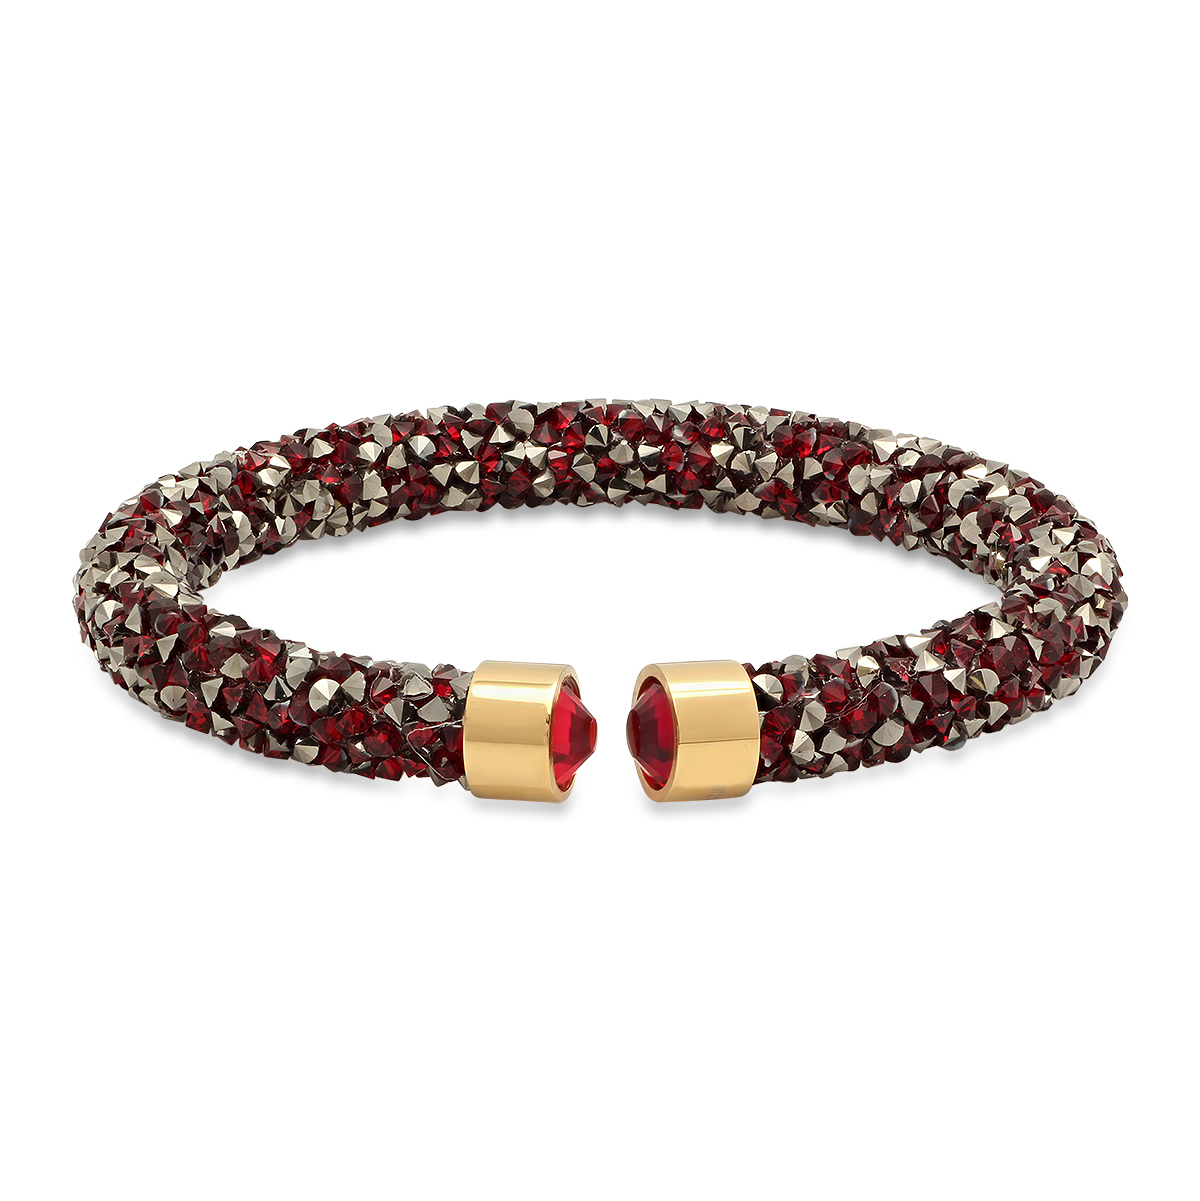 Gold Plated Stainless Steel Gray And Red Crystal Adjustable Cuff Brace